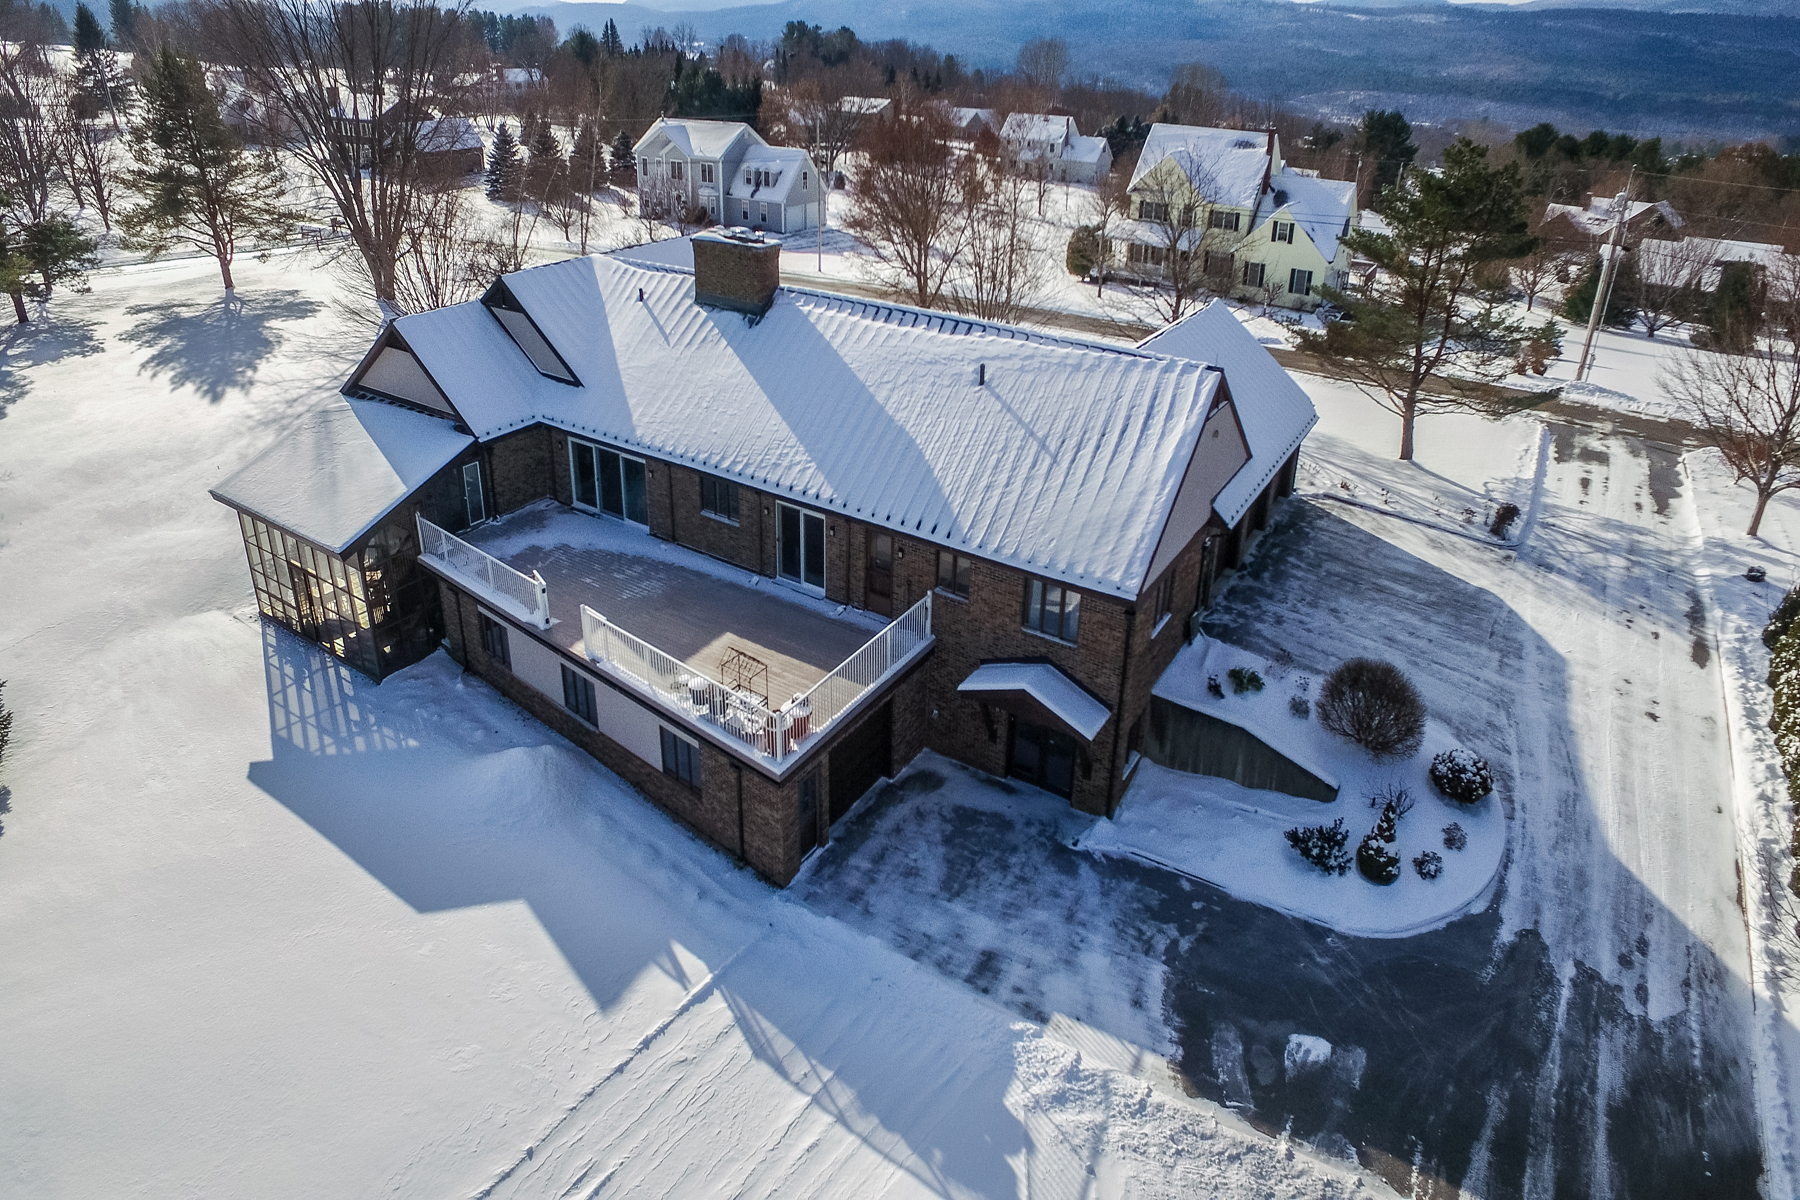 Single Family Homes for Sale at Custom Brick Home-Double Lot-Impressive Views 462 Orchard Hill Rd Pittsford, Vermont 05763 United States